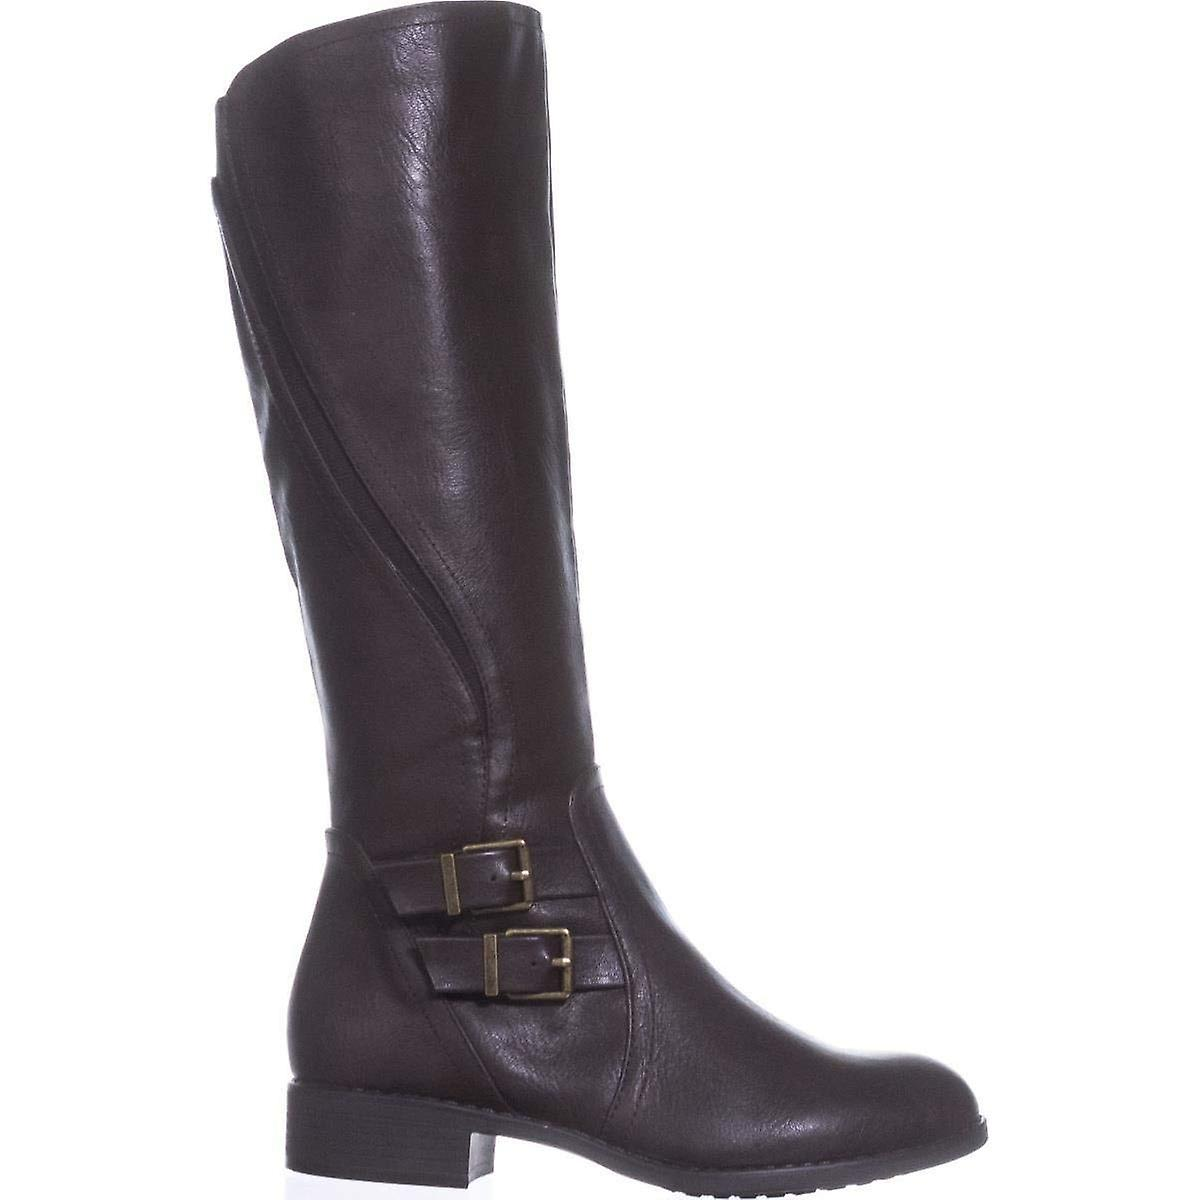 Style & Co. Womens Milah Closed Toe Knee High Fashion Boots